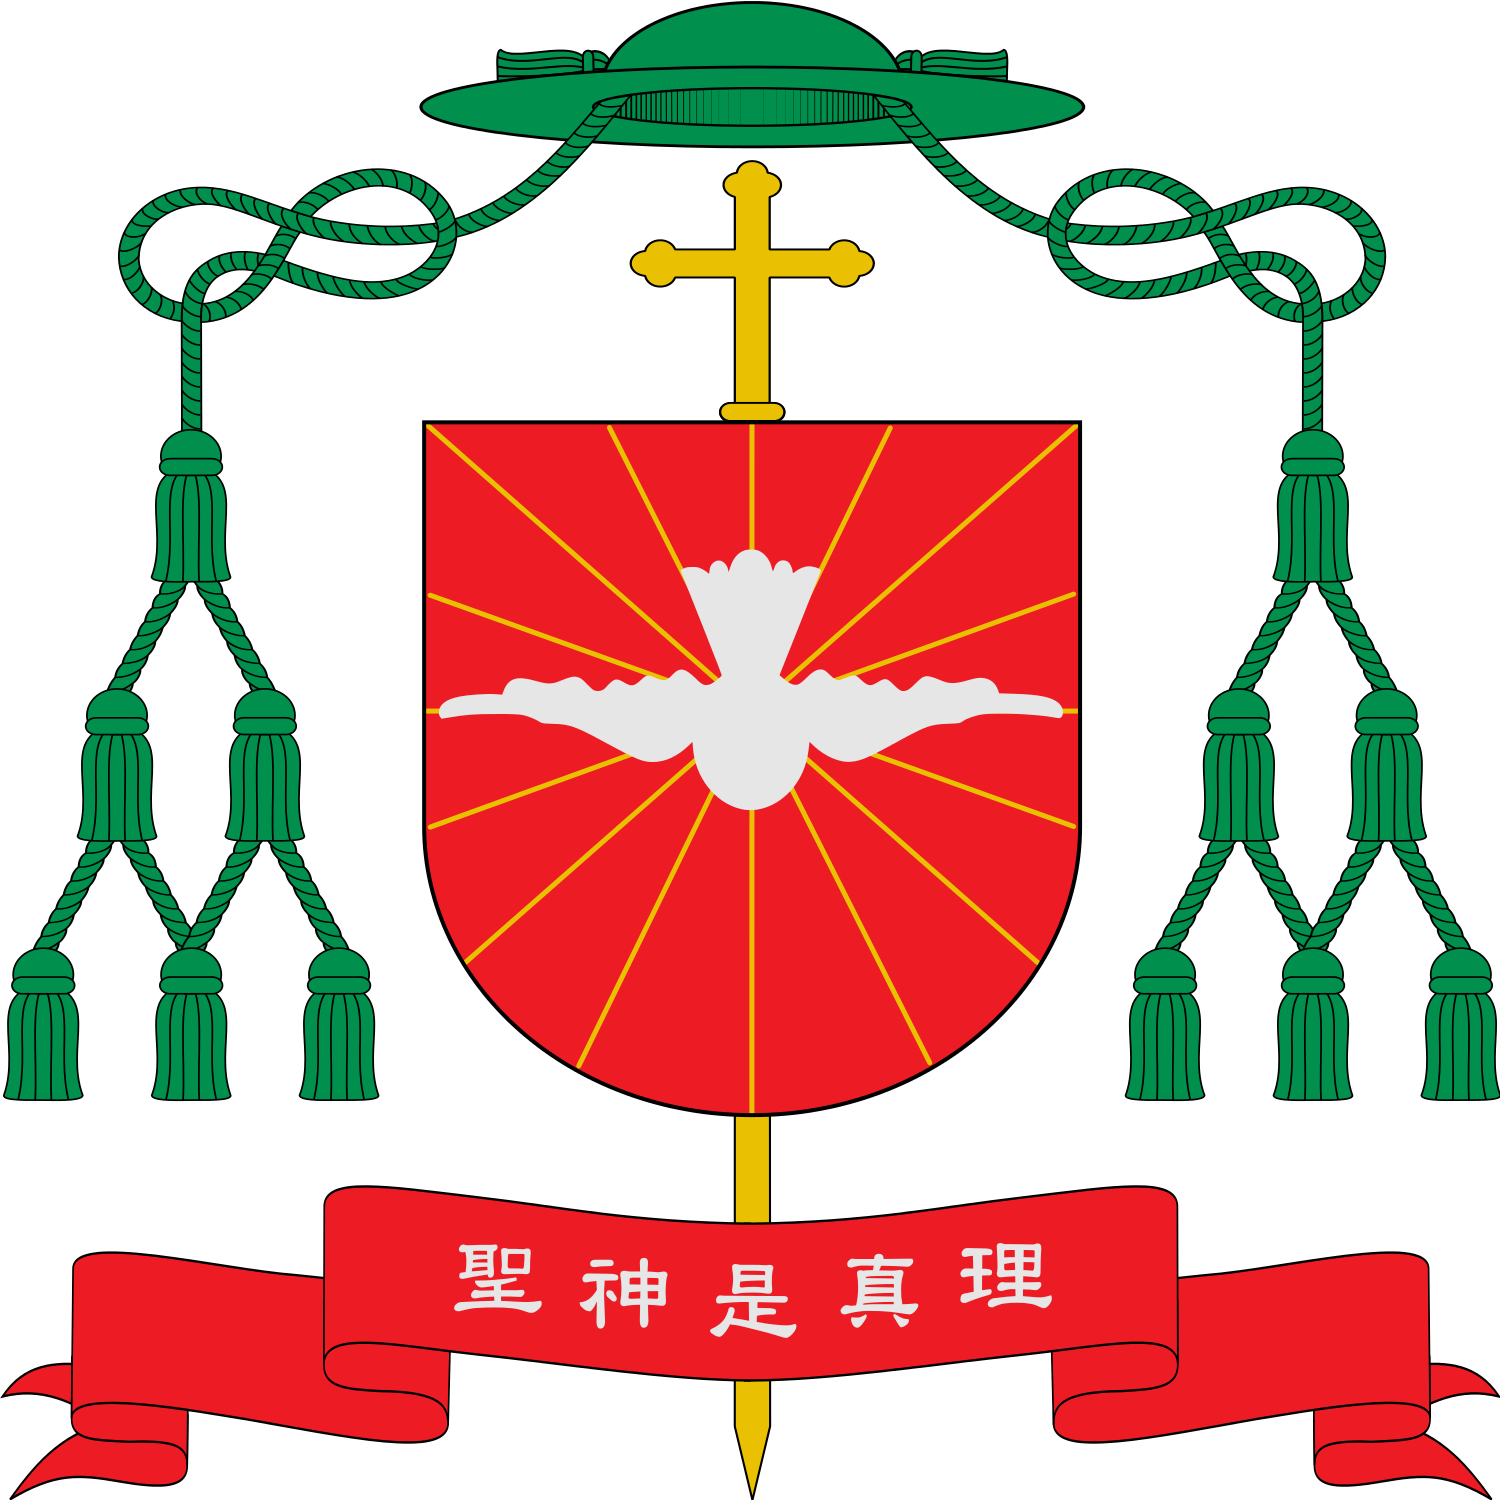 File:Coat of arms of Peter Chen Bo Lu.svg.